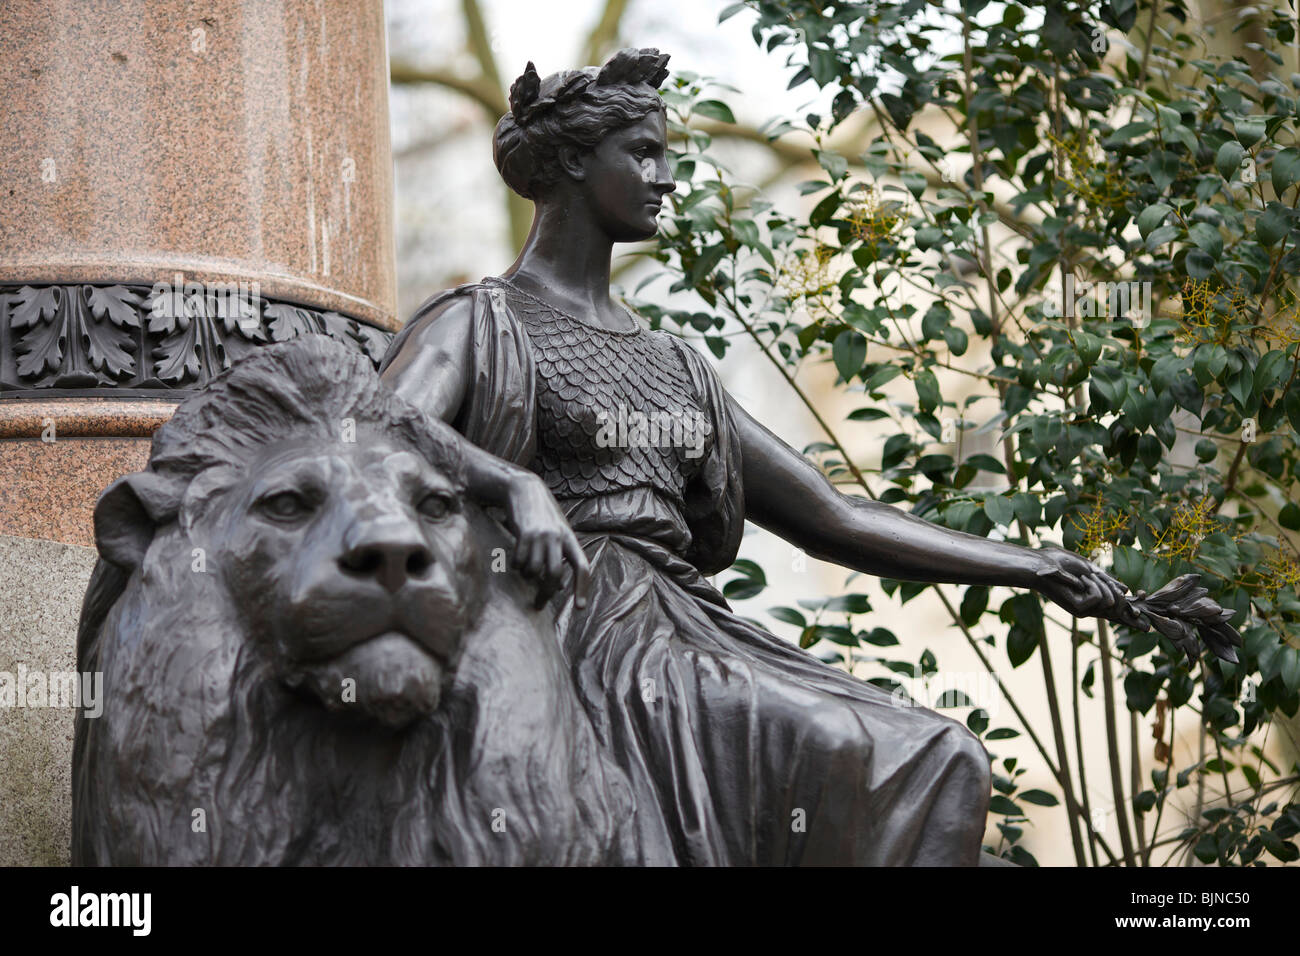 Allegorical statue of Britannia and Lion at the base of Sir Colin Campbell column in waterloo place in London - Stock Image